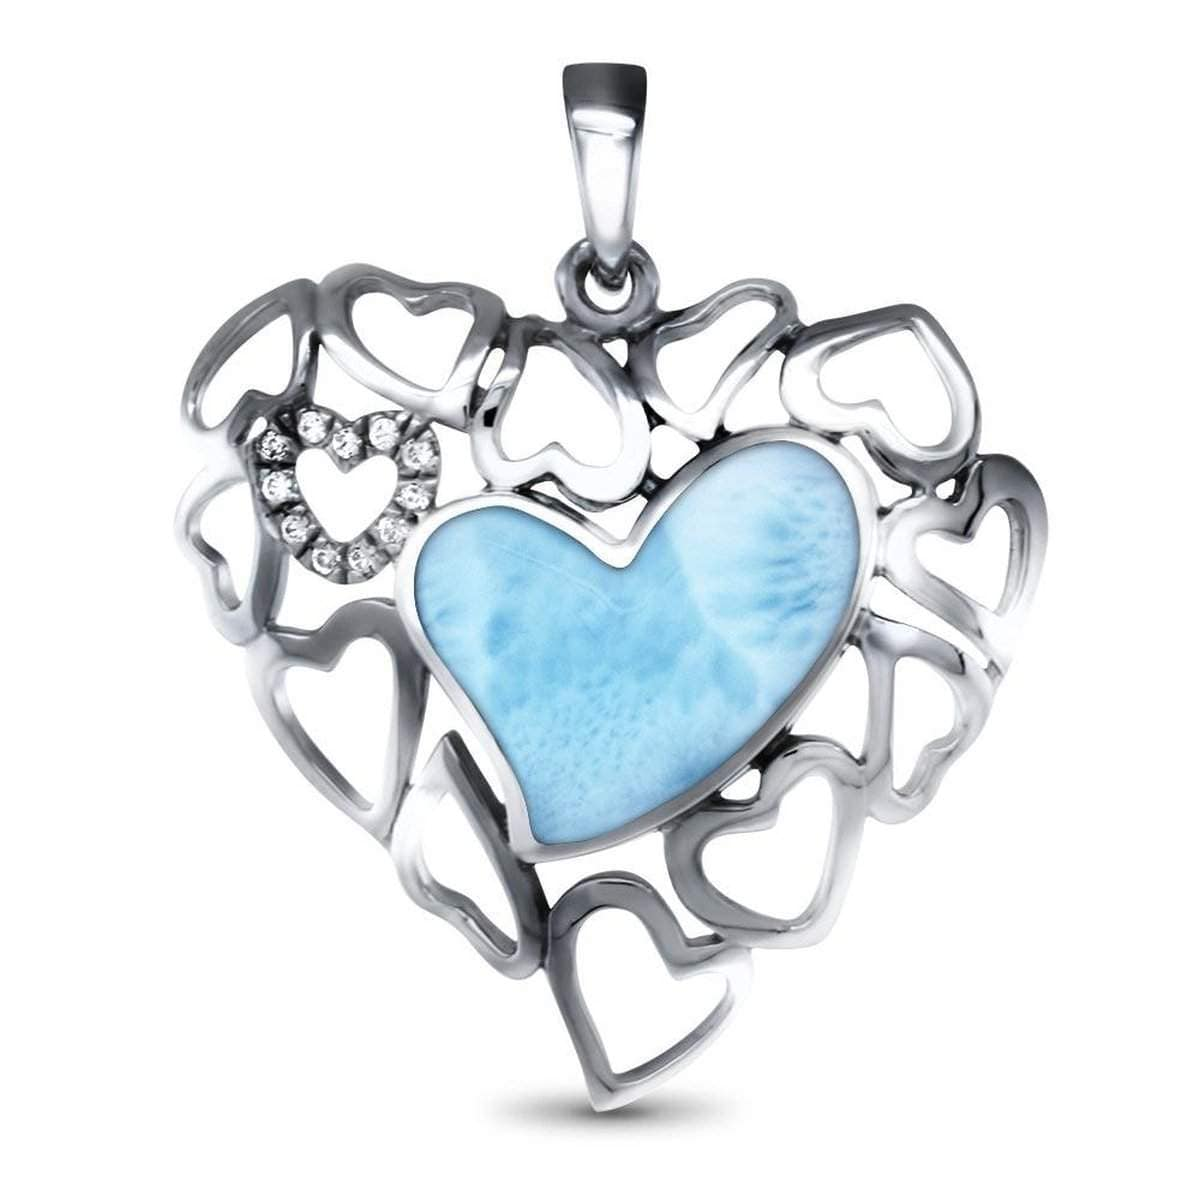 Lyla Heart Necklace - Nlyla00-00-Marahlago Larimar-Renee Taylor Gallery